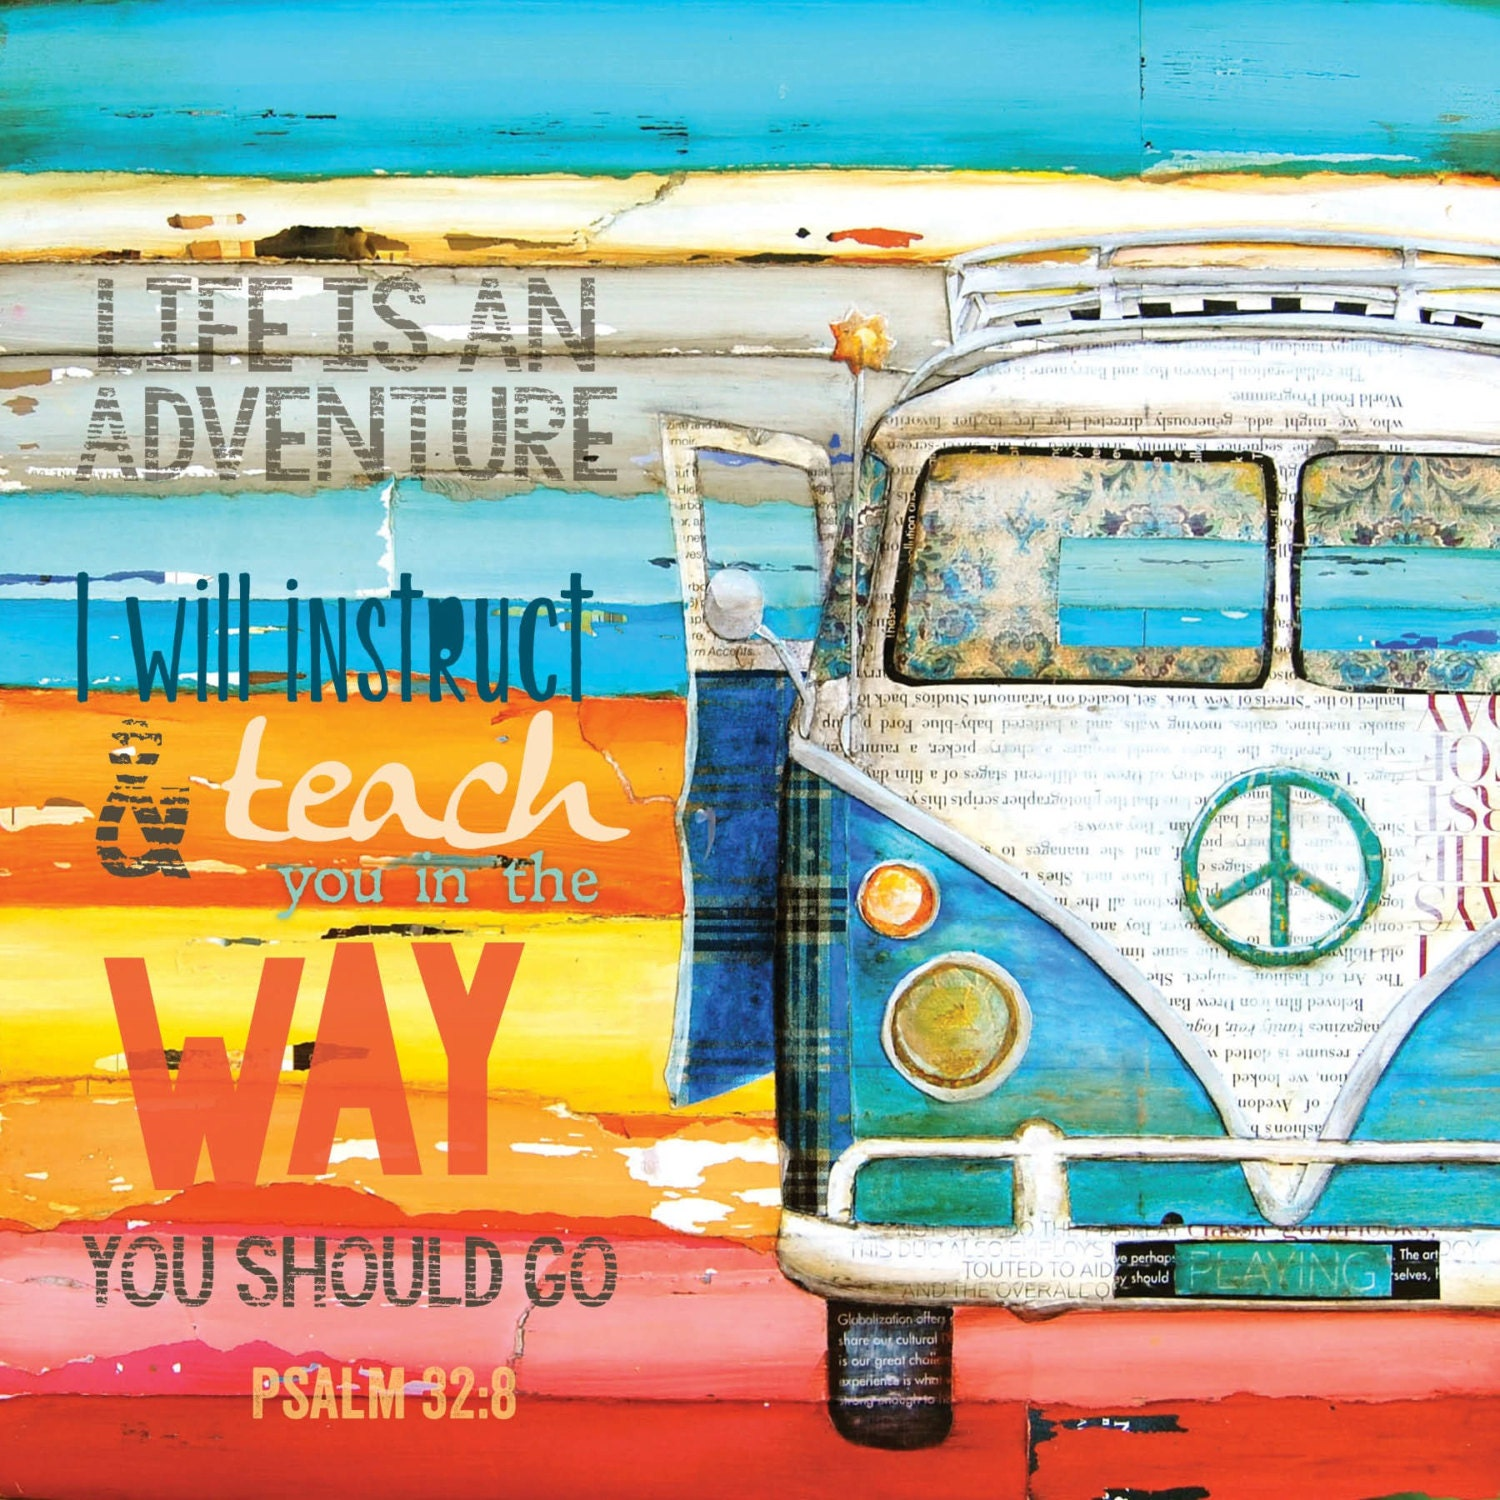 Vw Quote Impressive Art Print Or Canvas Adventure Vw Van Print Volkswagen Bus Beach